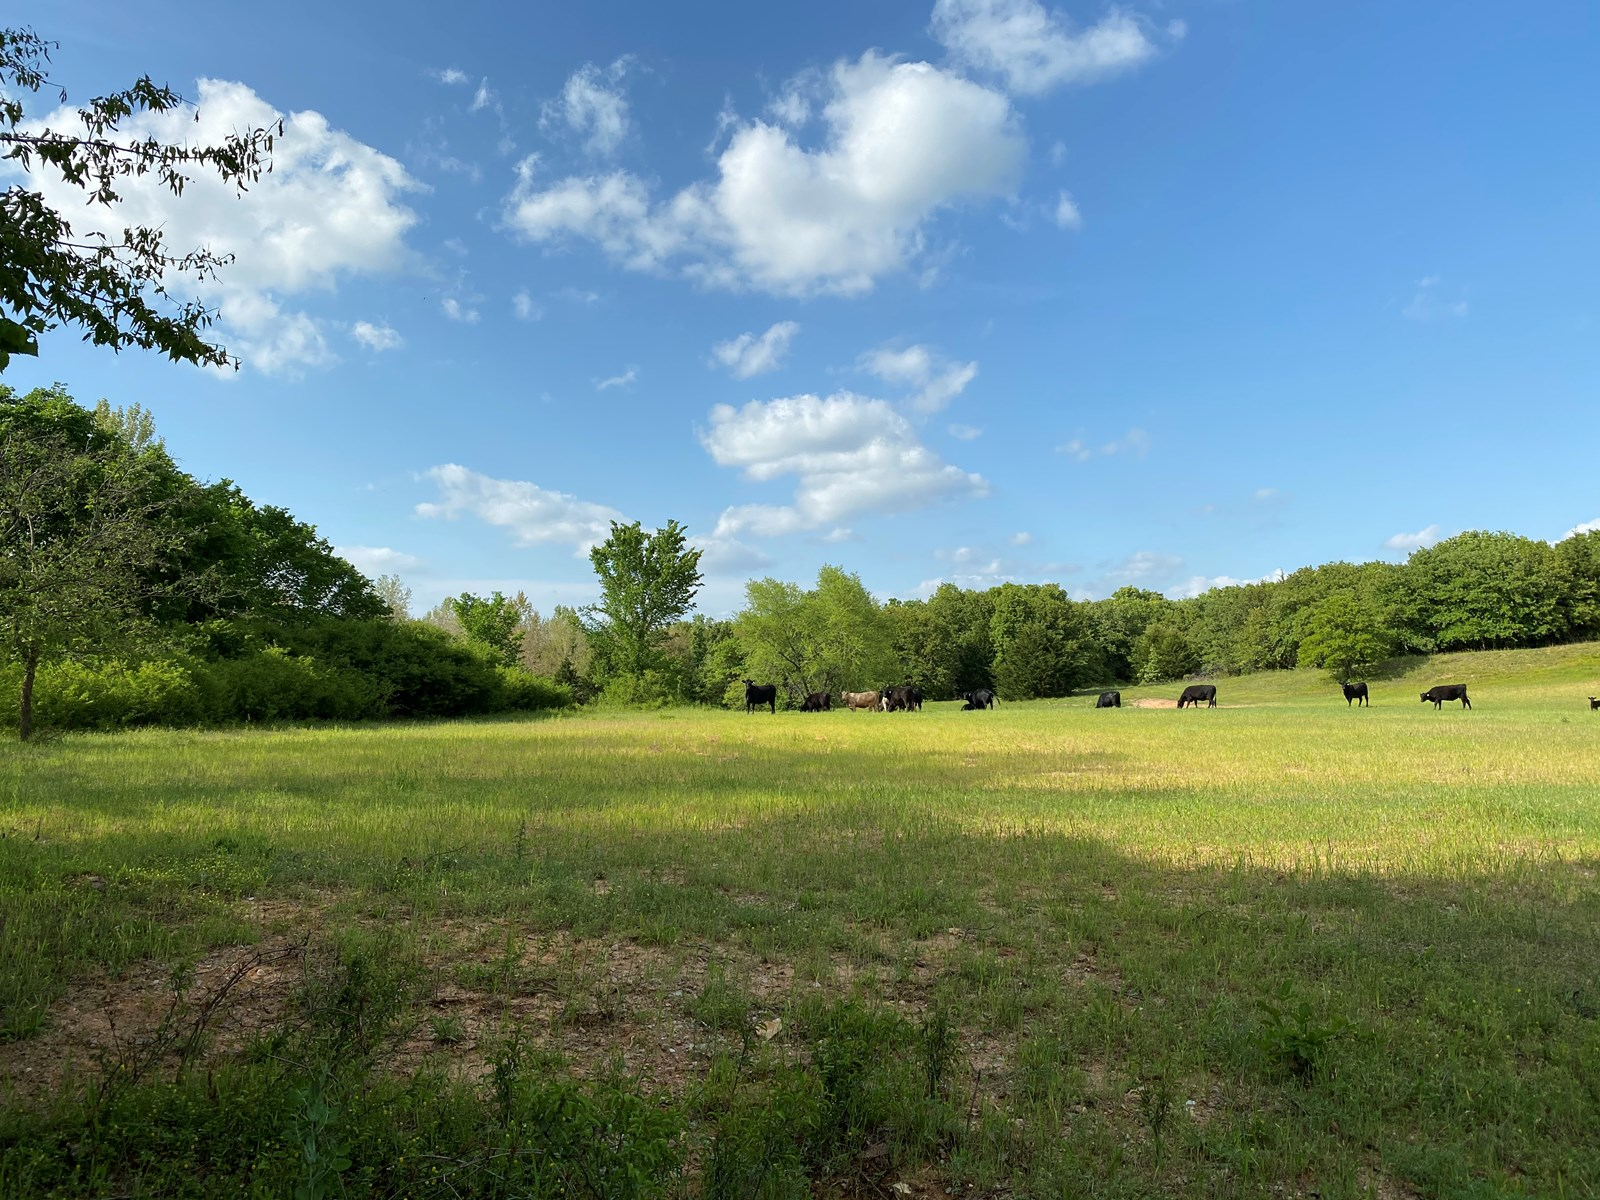 OKLAHOMA HUNTING & GRAZING LAND FOR SALE- WILSON, OK